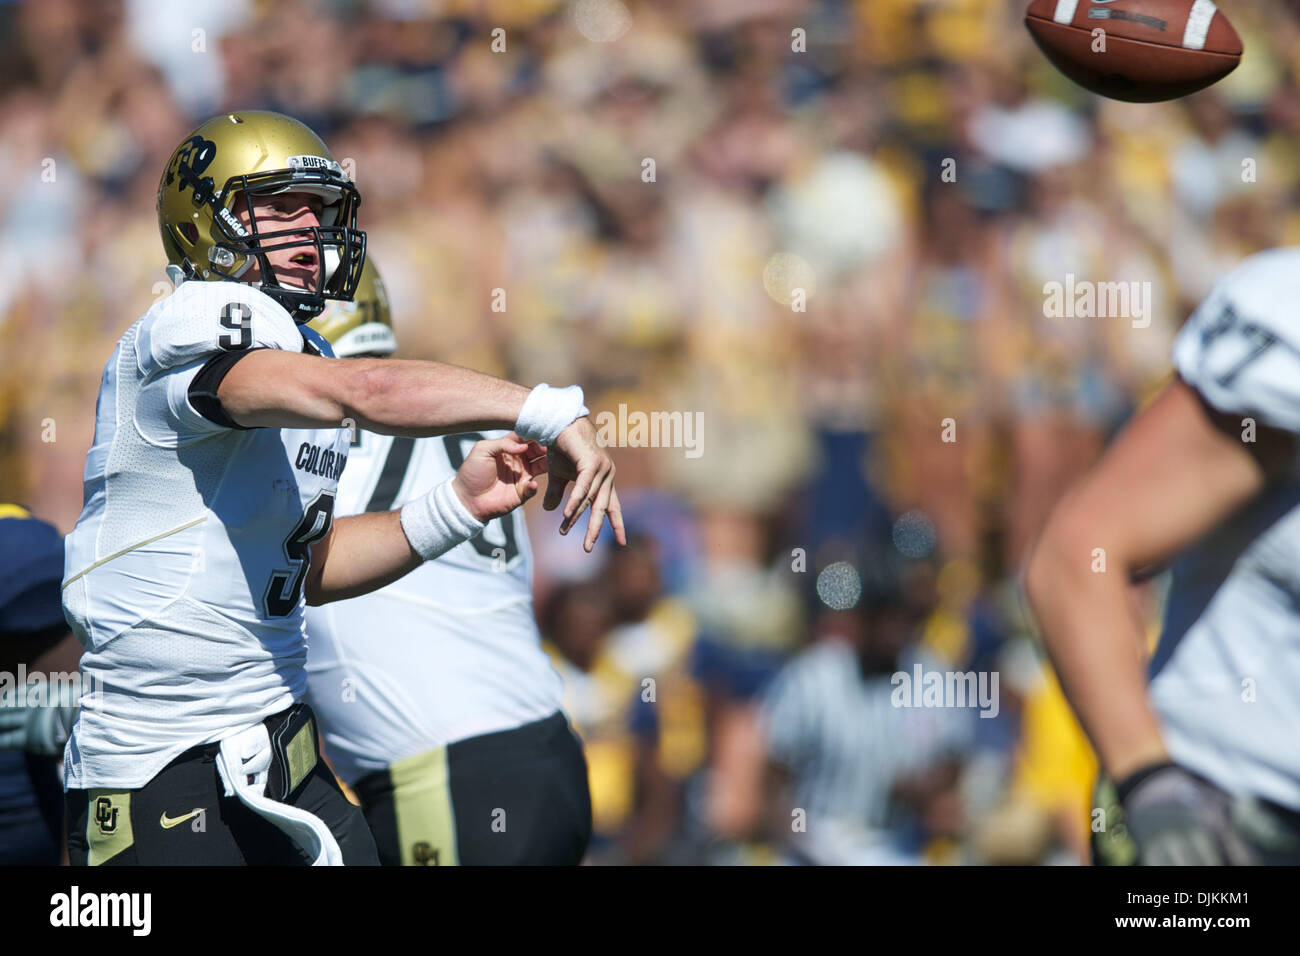 Sept. 11, 2010 - Berkeley, California, United States of America - Colorado QB Tyler Hansen (9) airs the ball out during the NCAA game between the California Golden Bears and the University of Colorado Buffaloes at Memorial Stadium.  Cal routed Colorado 52-7. (Credit Image: © Matt Cohen/Southcreek Global/ZUMApress.com) - Stock Image